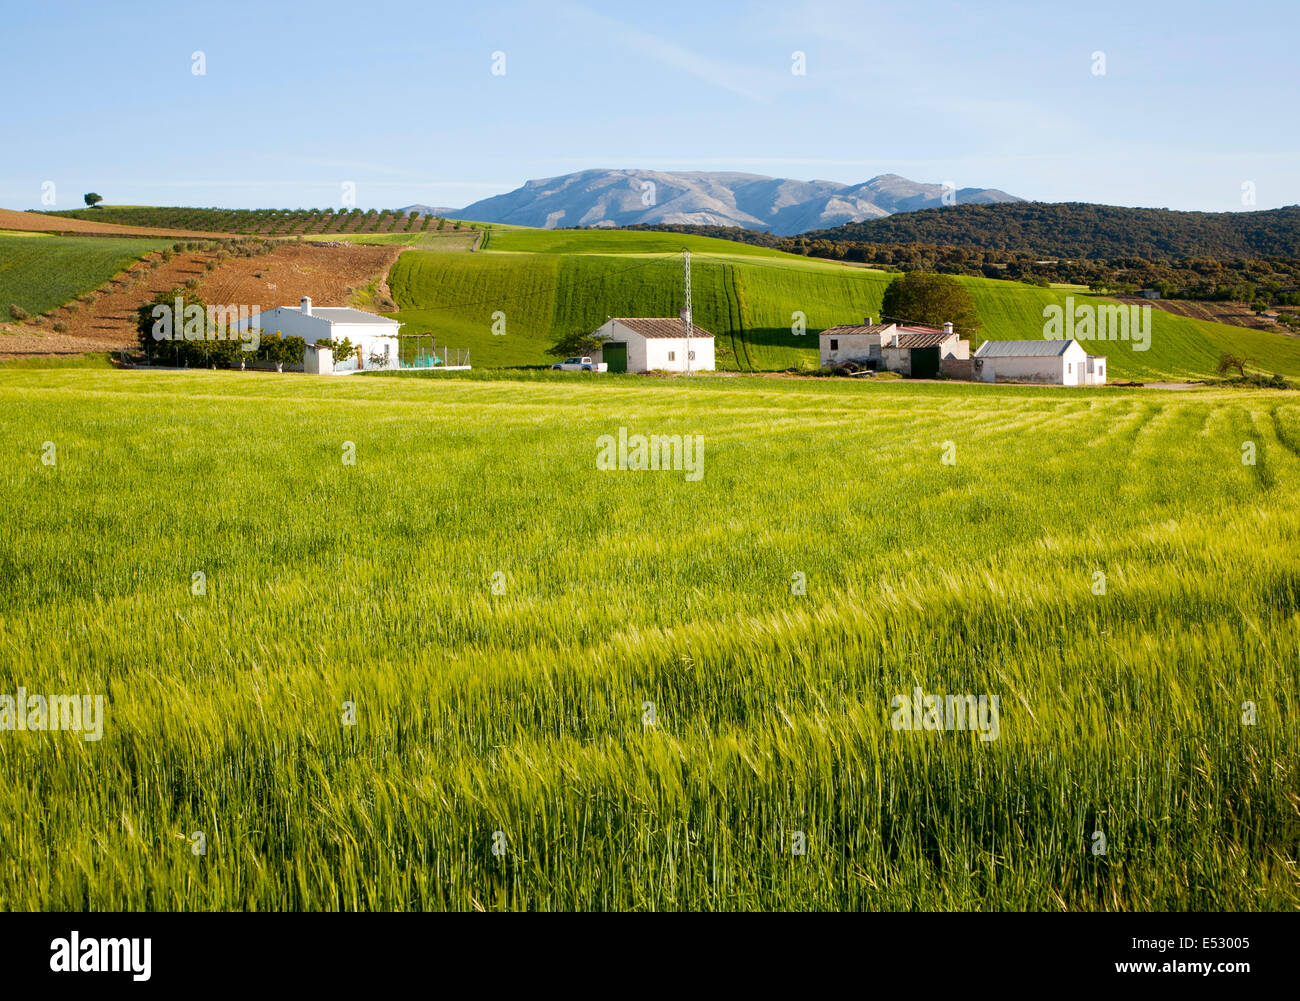 Farmhouse and barns set in rolling arable fields green barley crop near Alhama de Granada, Spain - Stock Image